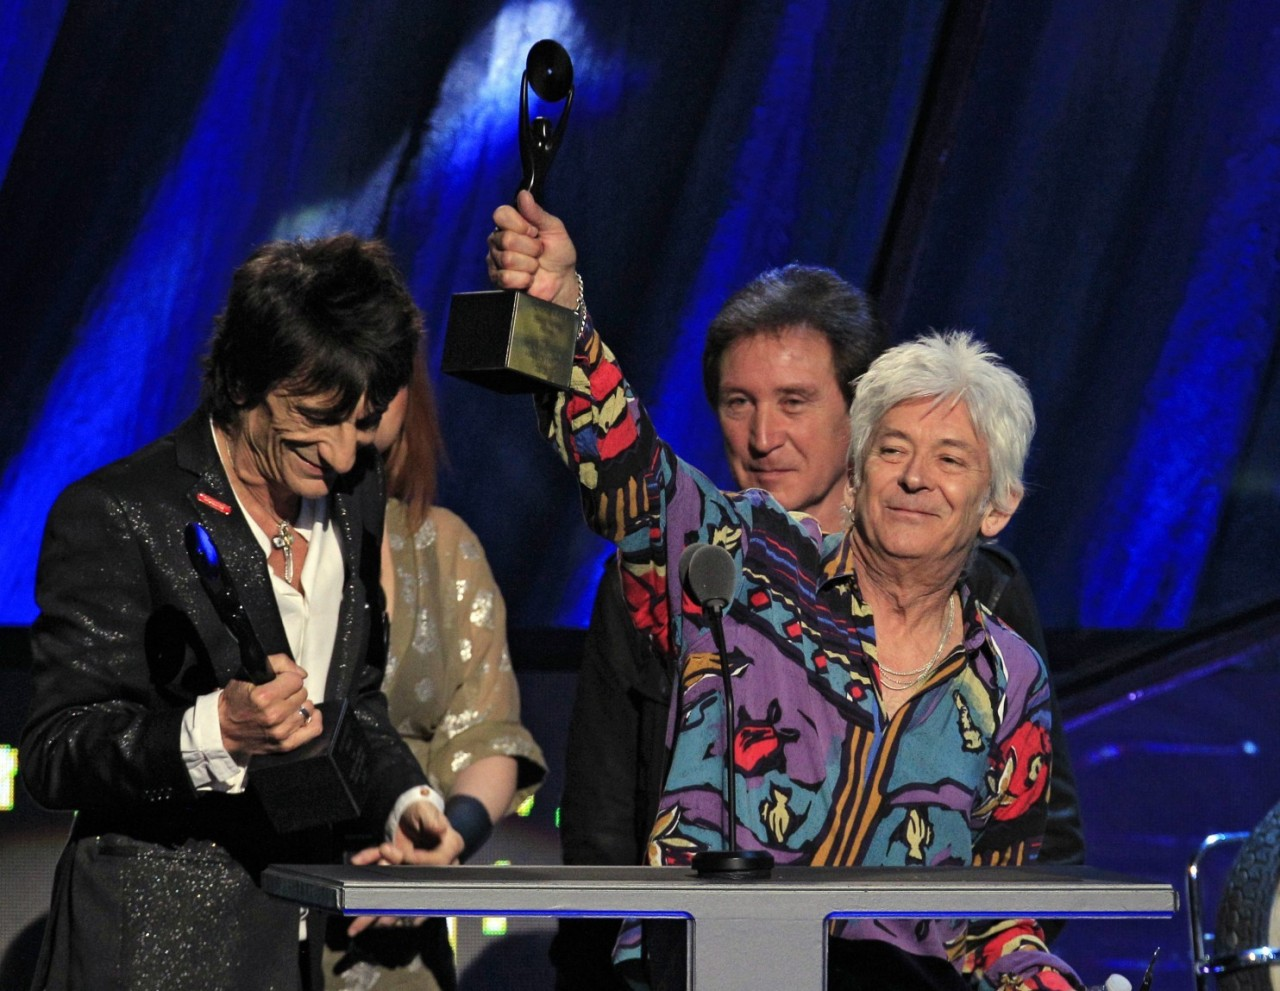 Ian McLagan, inventive keyboardist with Faces and Rolling Stones, dies at 69